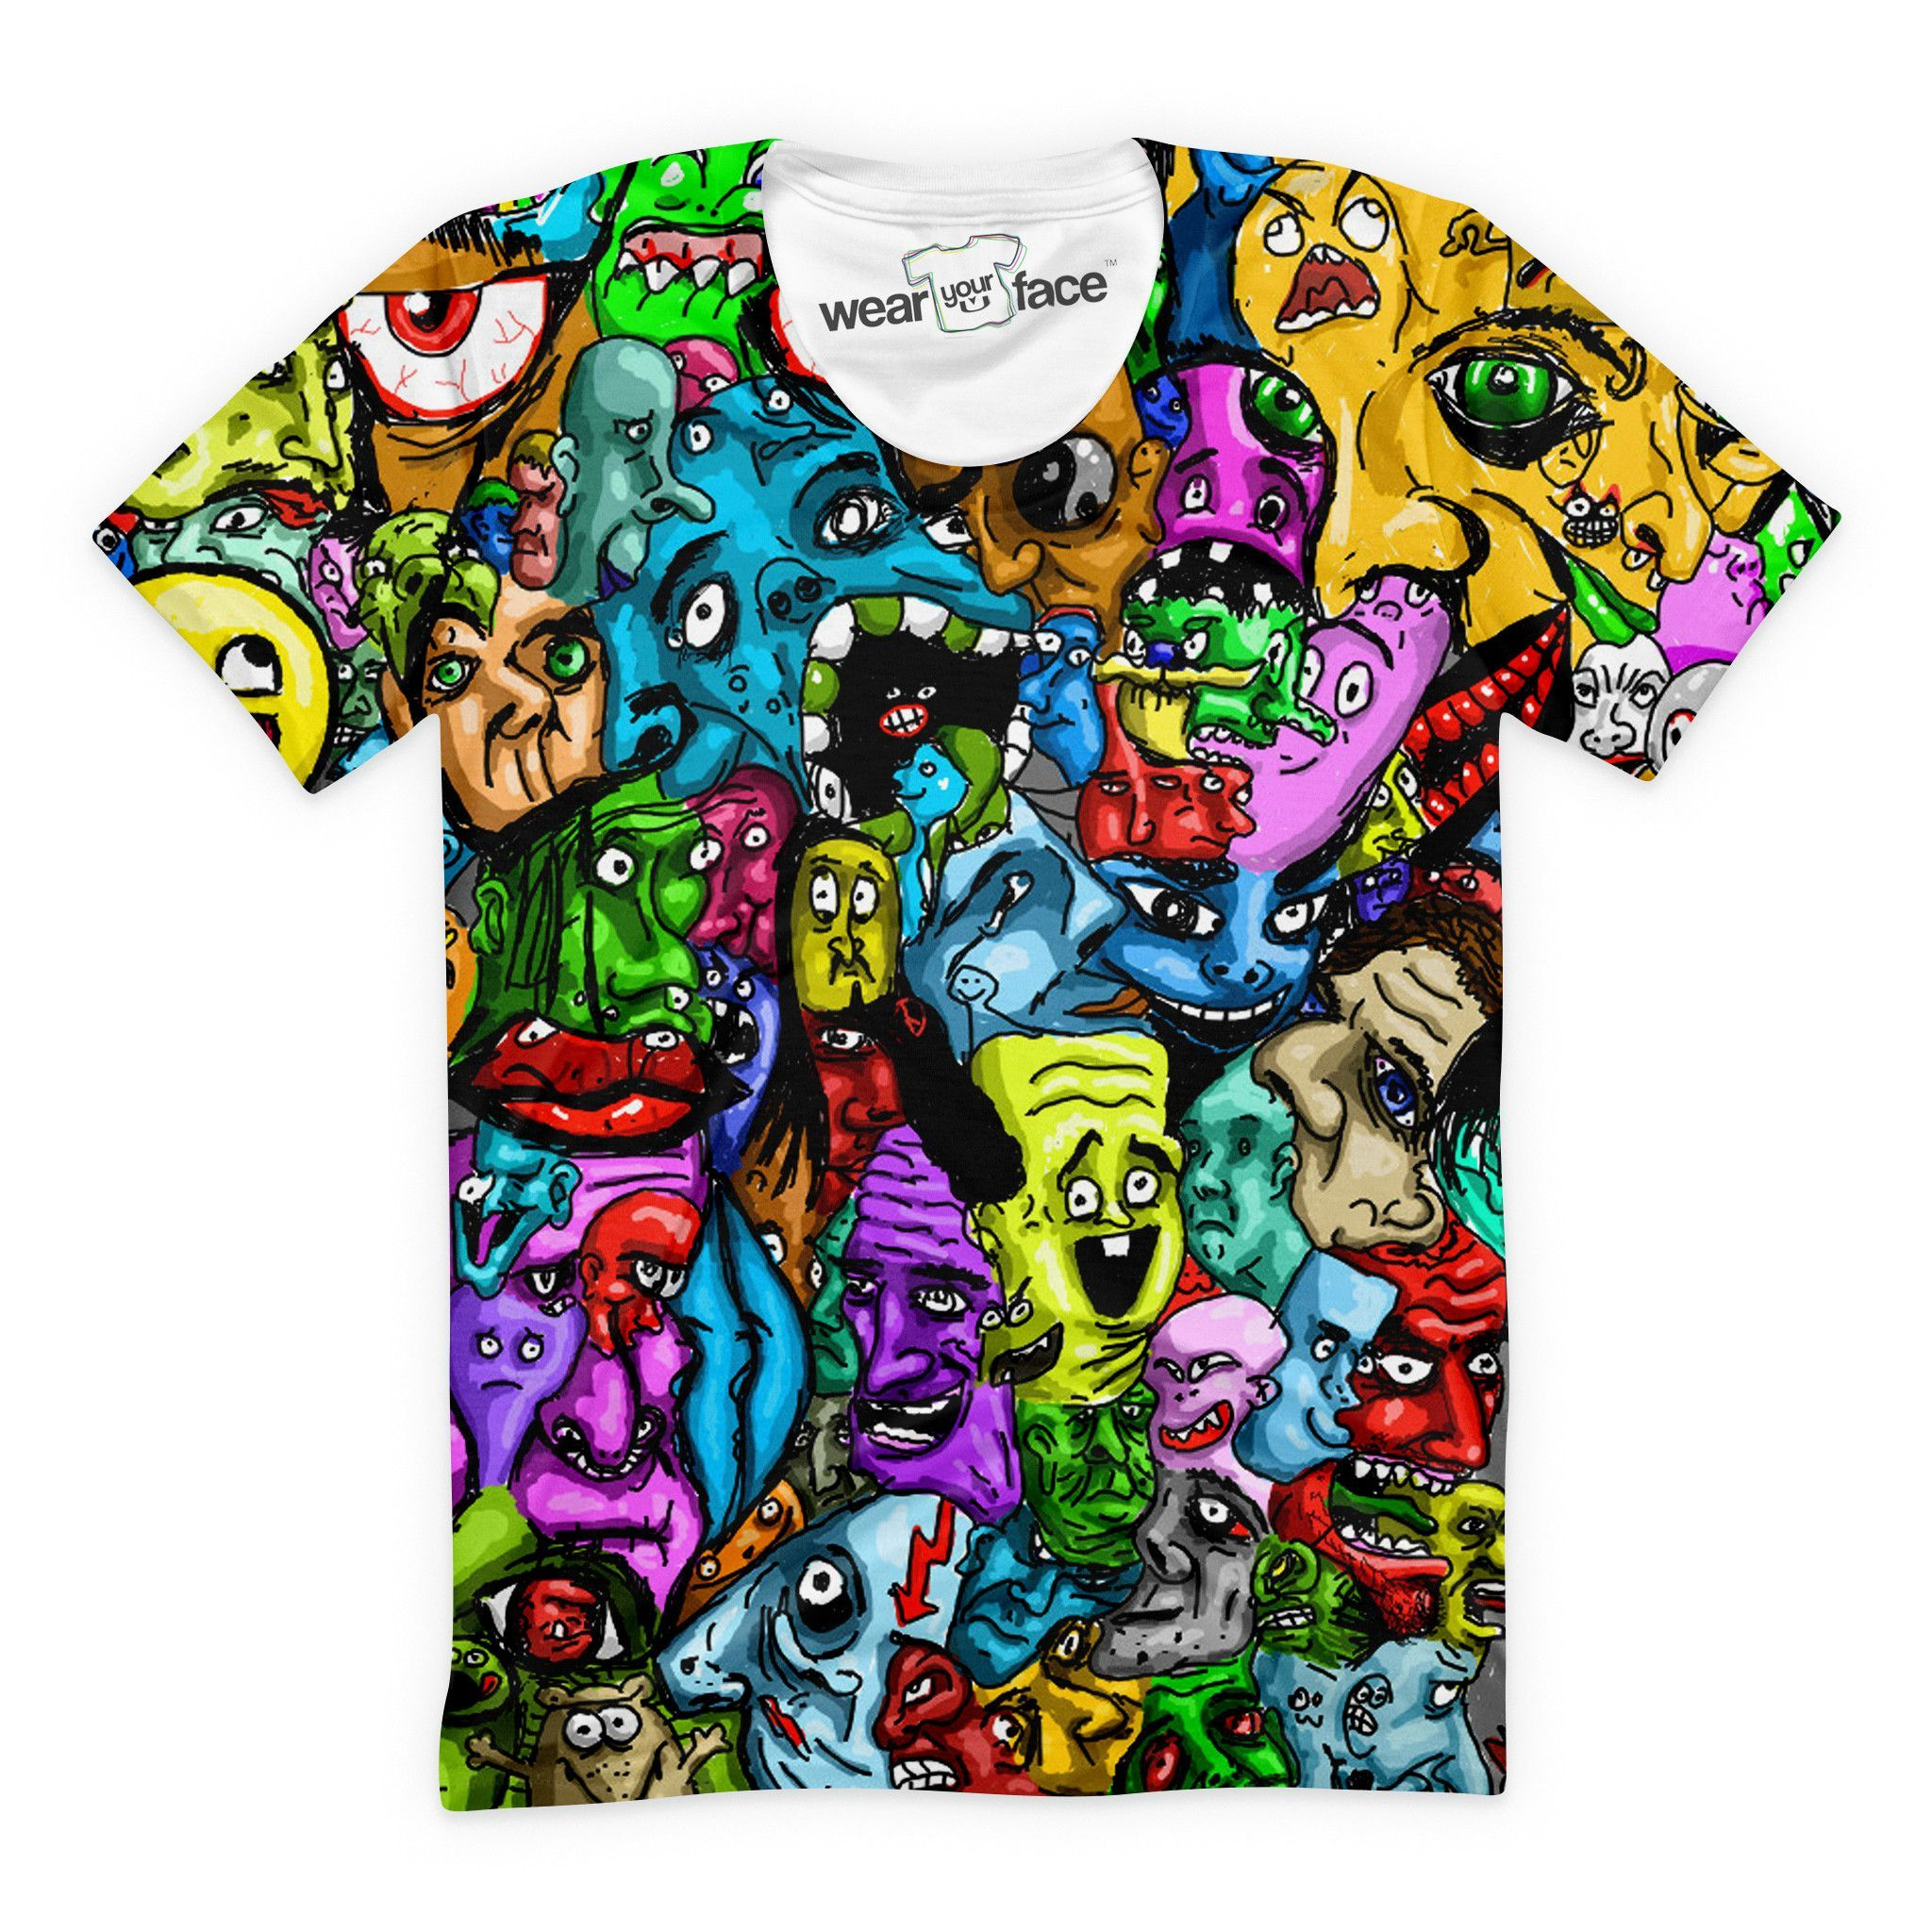 Smoking Cat with Glasses T-Shirt Cool Trippy Groovy Rainbow 420 Tee Shirt